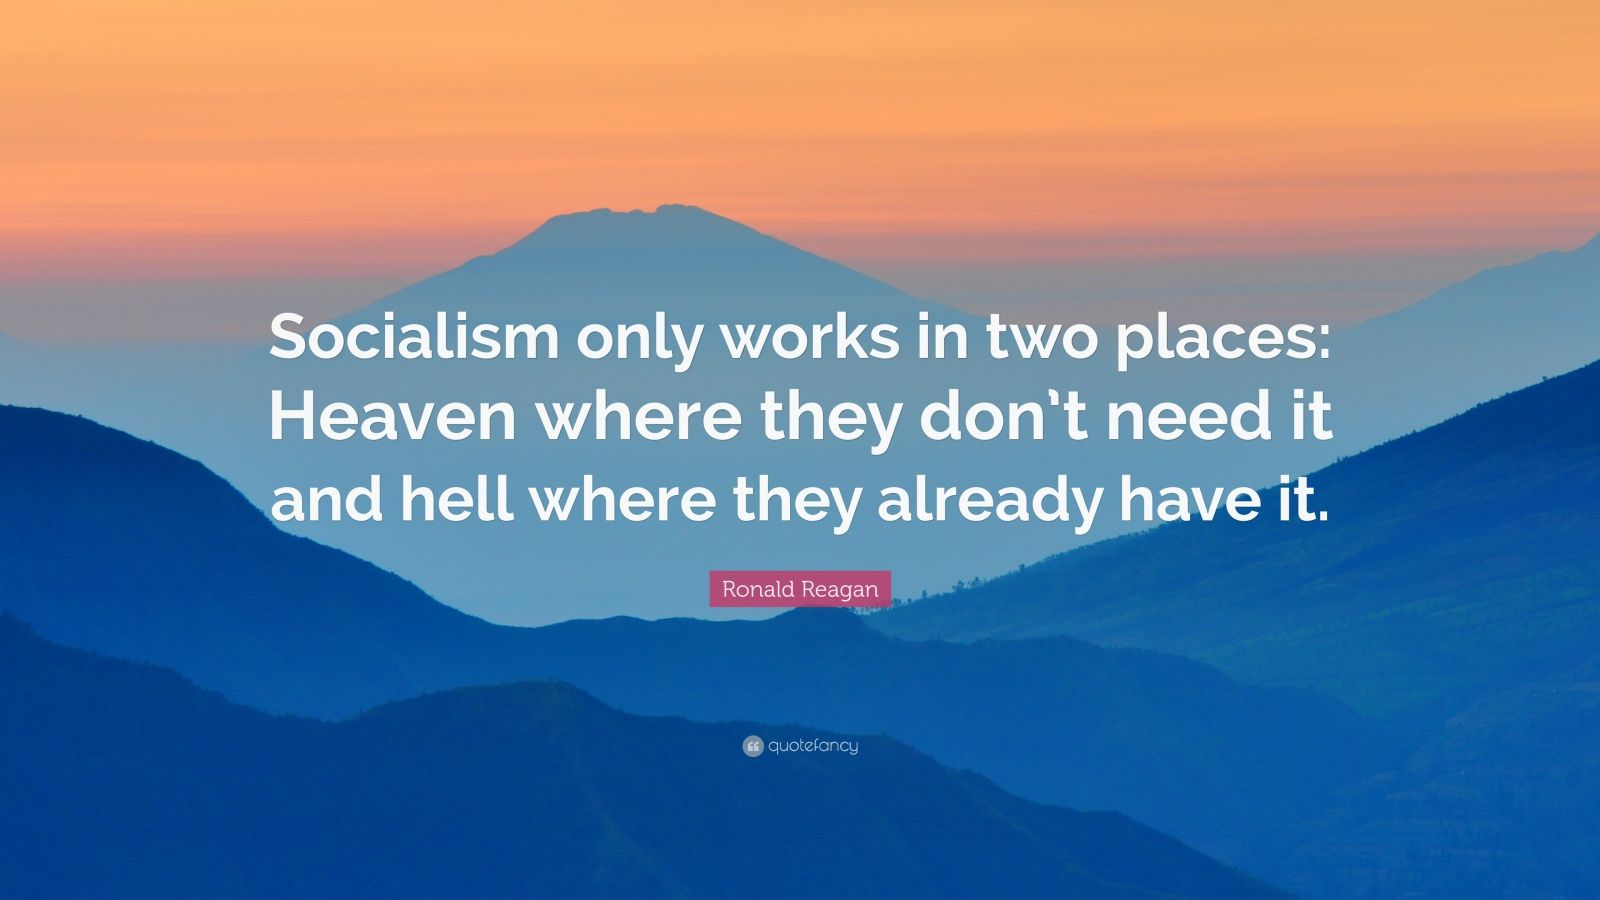 """Ronald Reagan Quote: """"Socialism only works in two places: Heaven where they don't need it and hell where they already have it."""""""